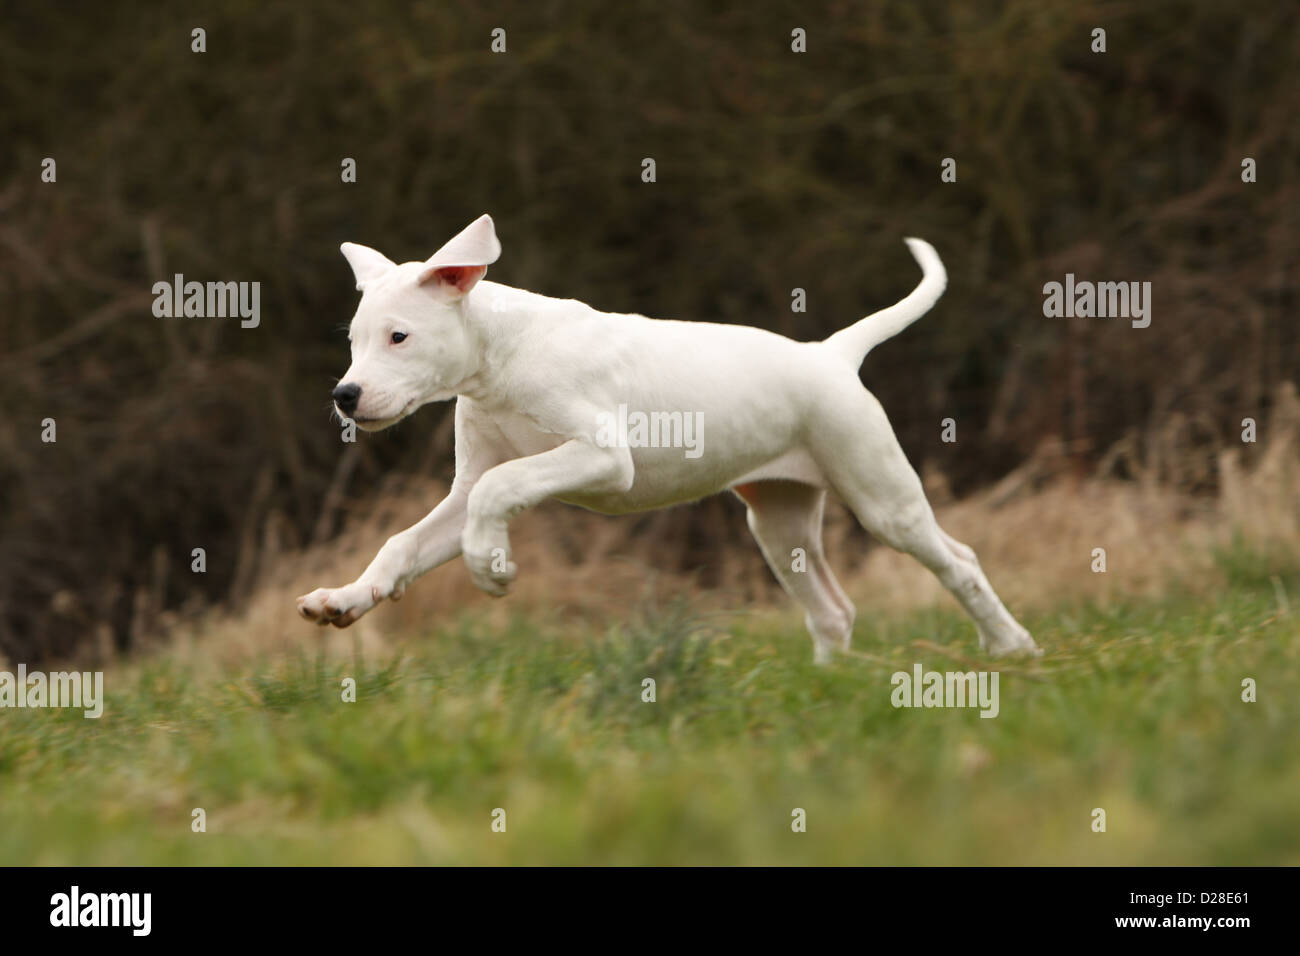 Chien Dogo Argentino / Dogue Argentin (oreilles naturelles) puppy running Photo Stock